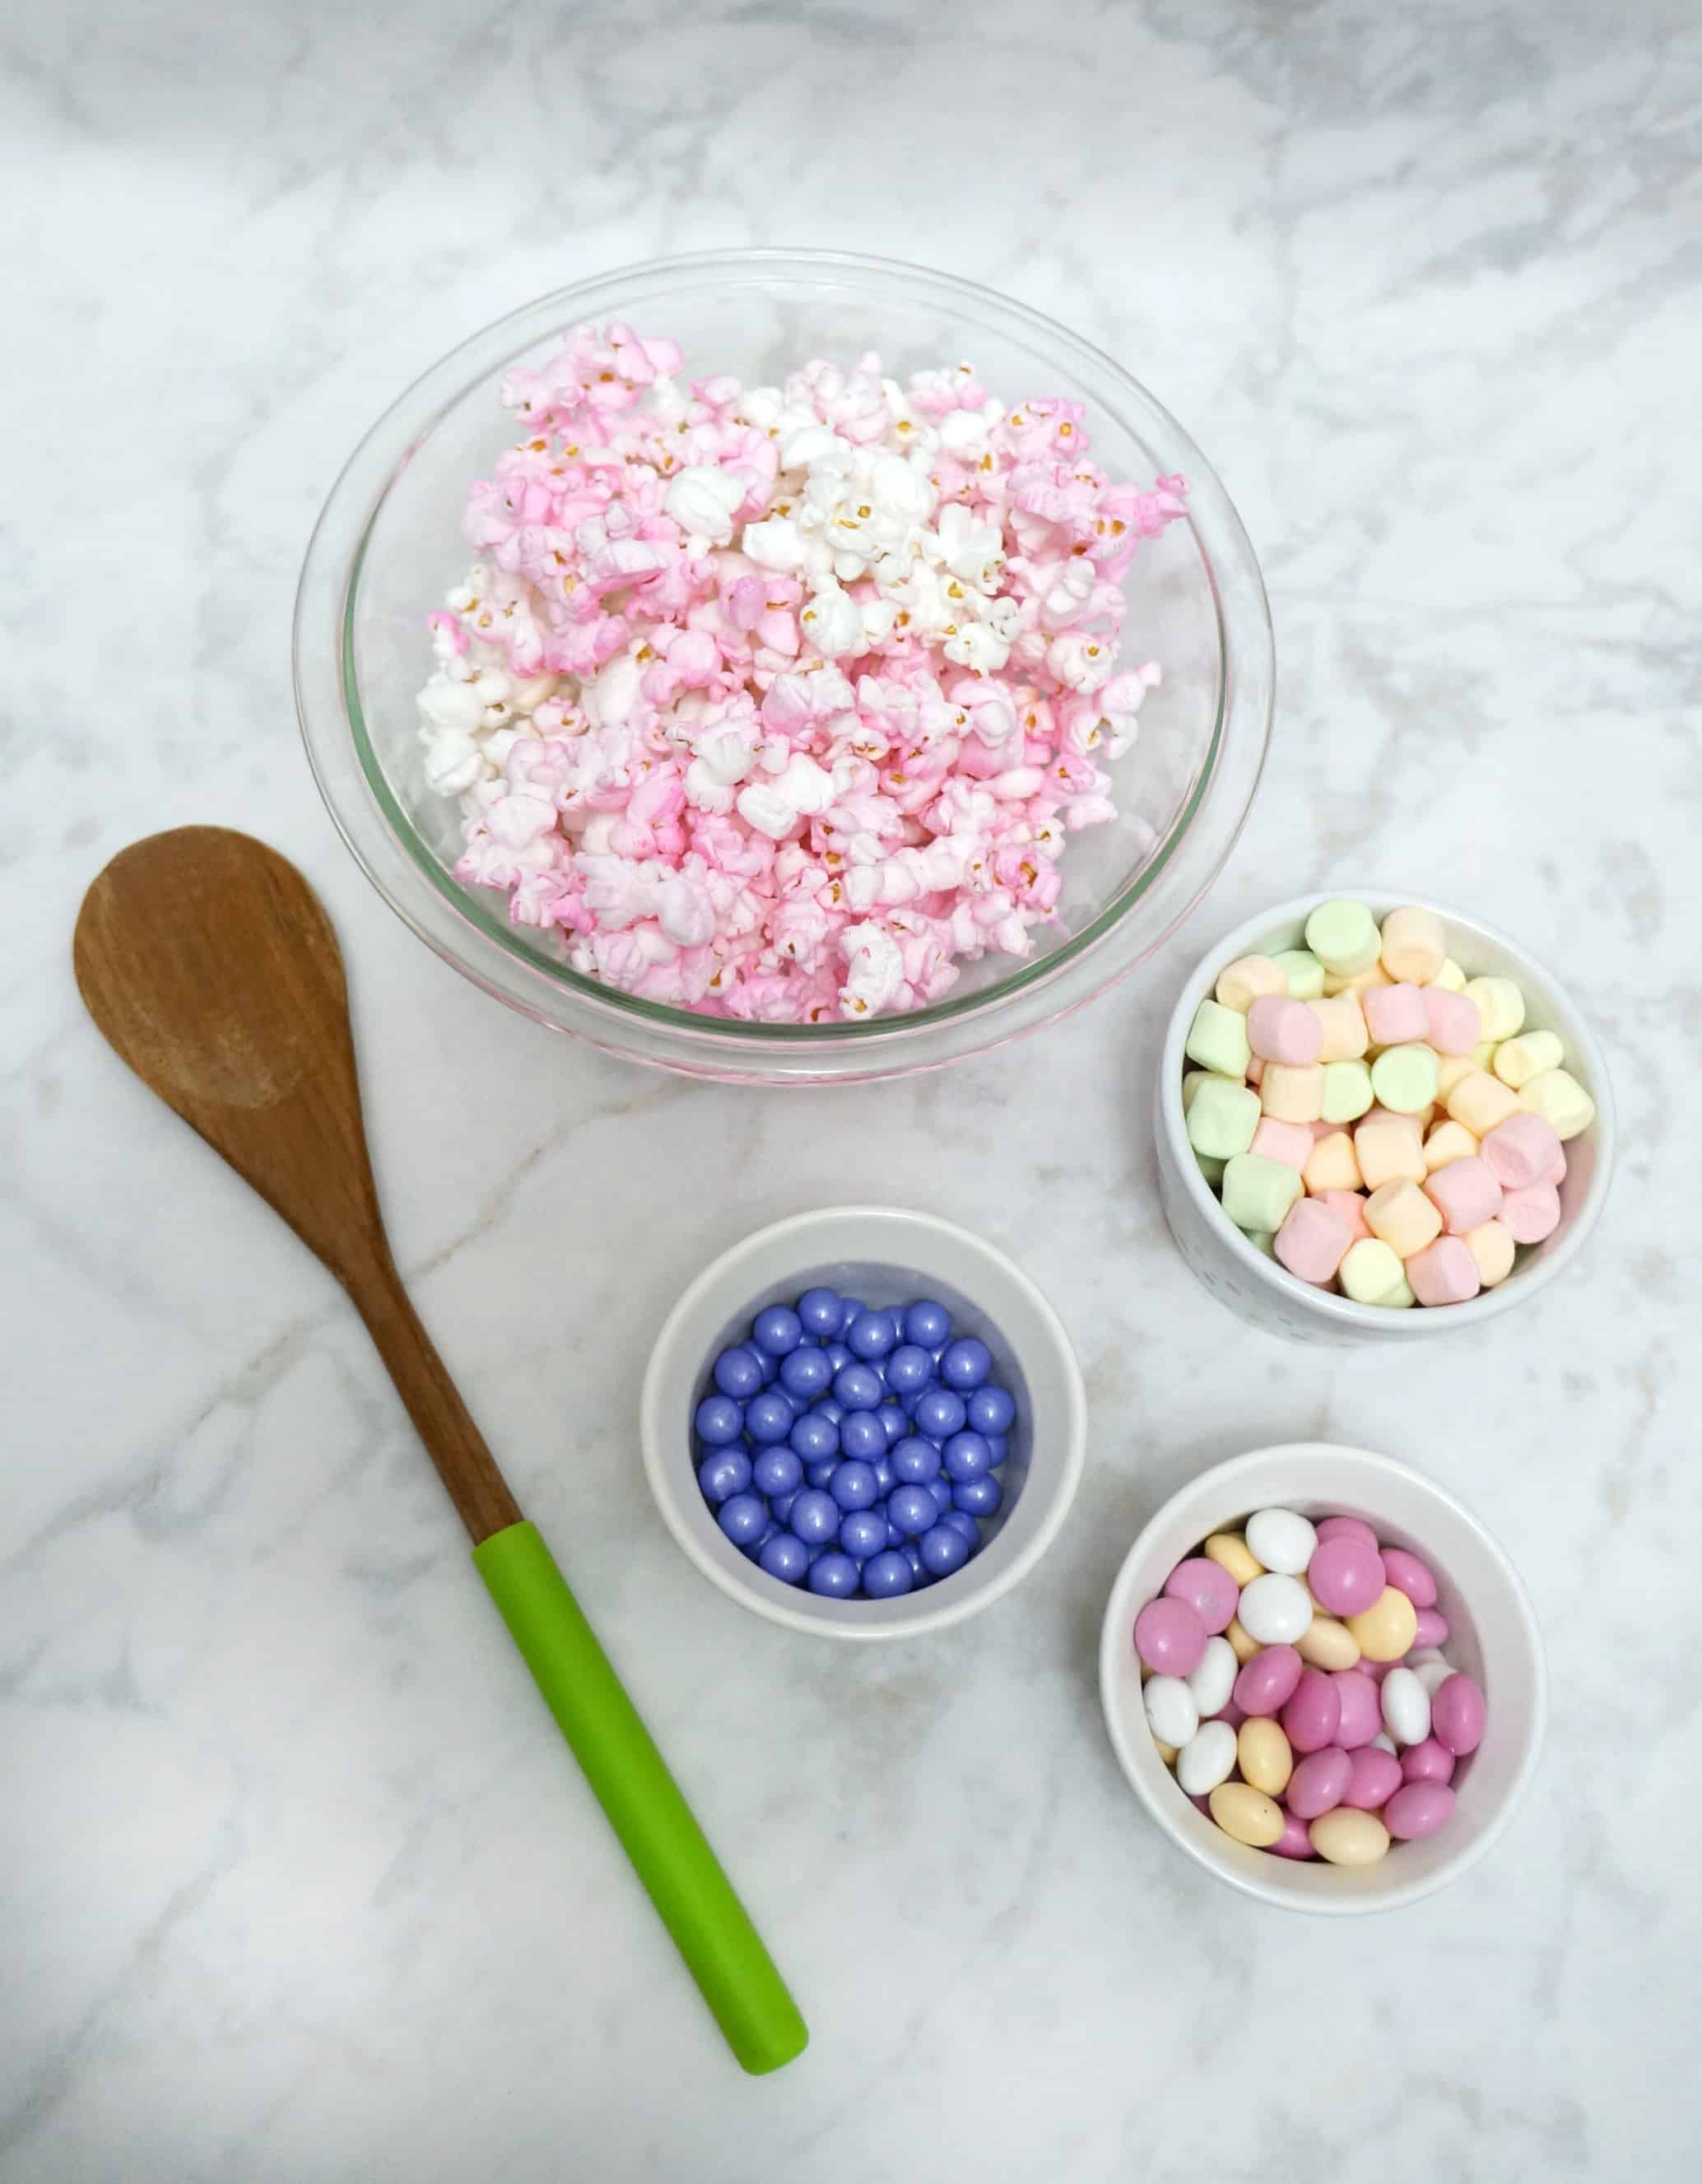 Unicorn popcorn recipe ingredients